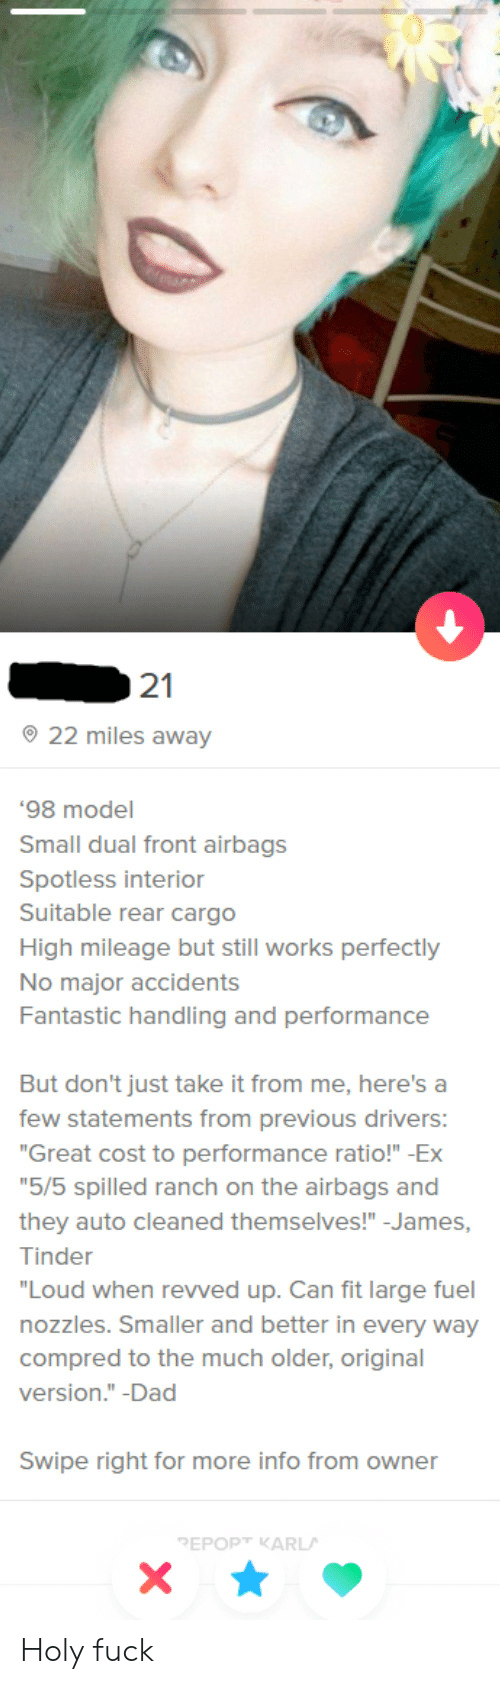 """Dad, Tinder, and Fuck: 21  22 miles away  '98 model  Small dual front airbags  Spotless interior  Suitable rear cargo  High mileage but still works perfectly  No major accidents  Fantastic handling and performance  But don't just take it from me, here's a  few statements from previous drivers:  """"Great cost to performance ratio!"""" -Ex  """"5/5 spilled ranch on the airbags and  they auto cleaned themselves!"""" -James,  Tinder  """"Loud when revved up. Can fit large fuel  nozzles. Smaller and better in every way  compred to the much older, original  version."""" -Dad  Swipe right for more info from owner  EPOPT KARLA  X Holy fuck"""